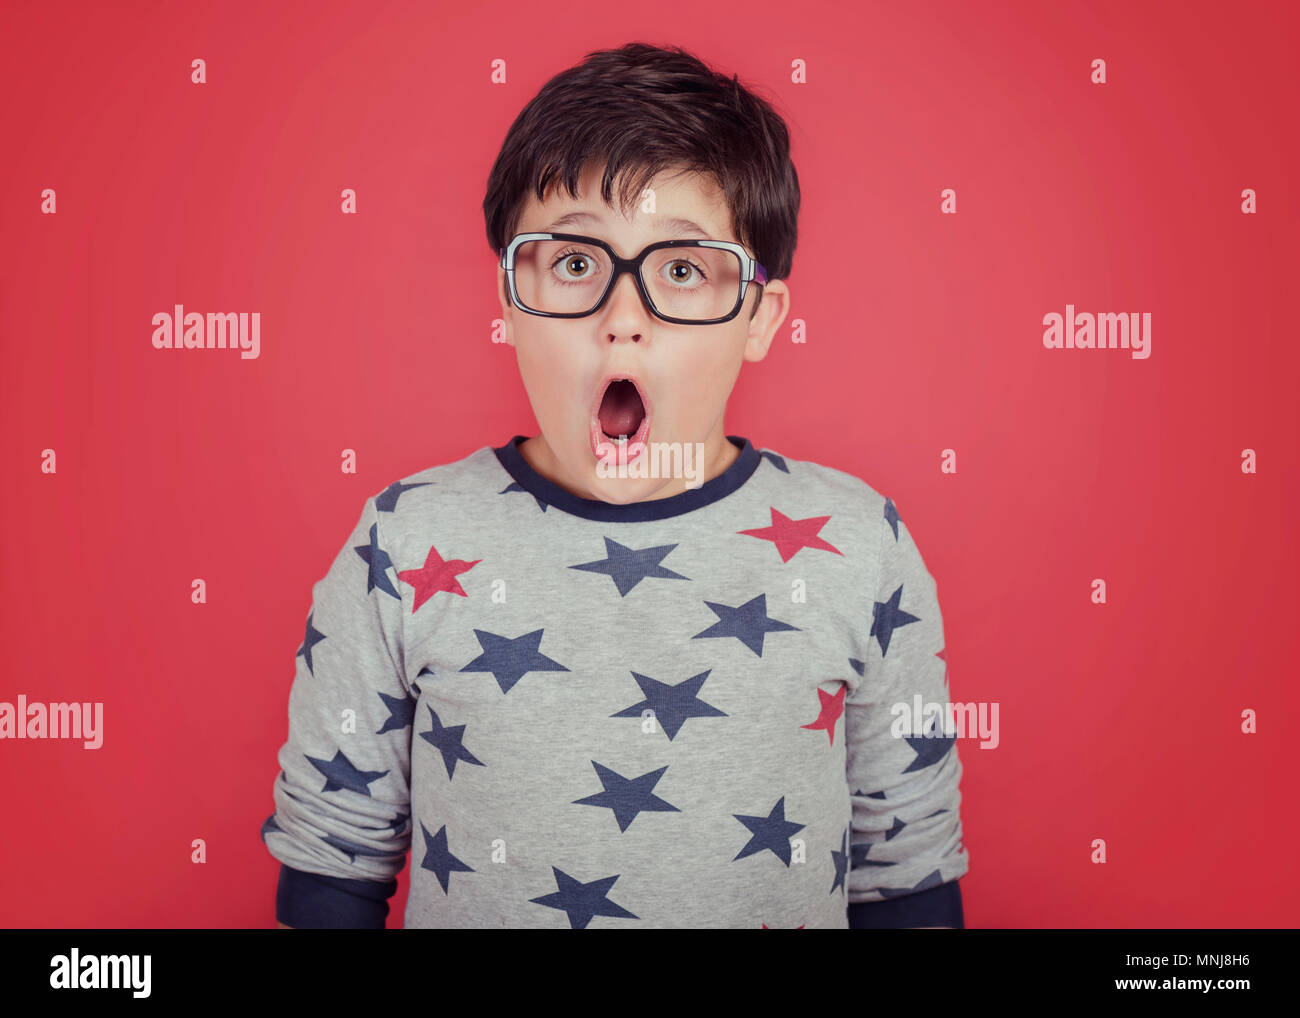 surprised boy with glasses on red background - Stock Image